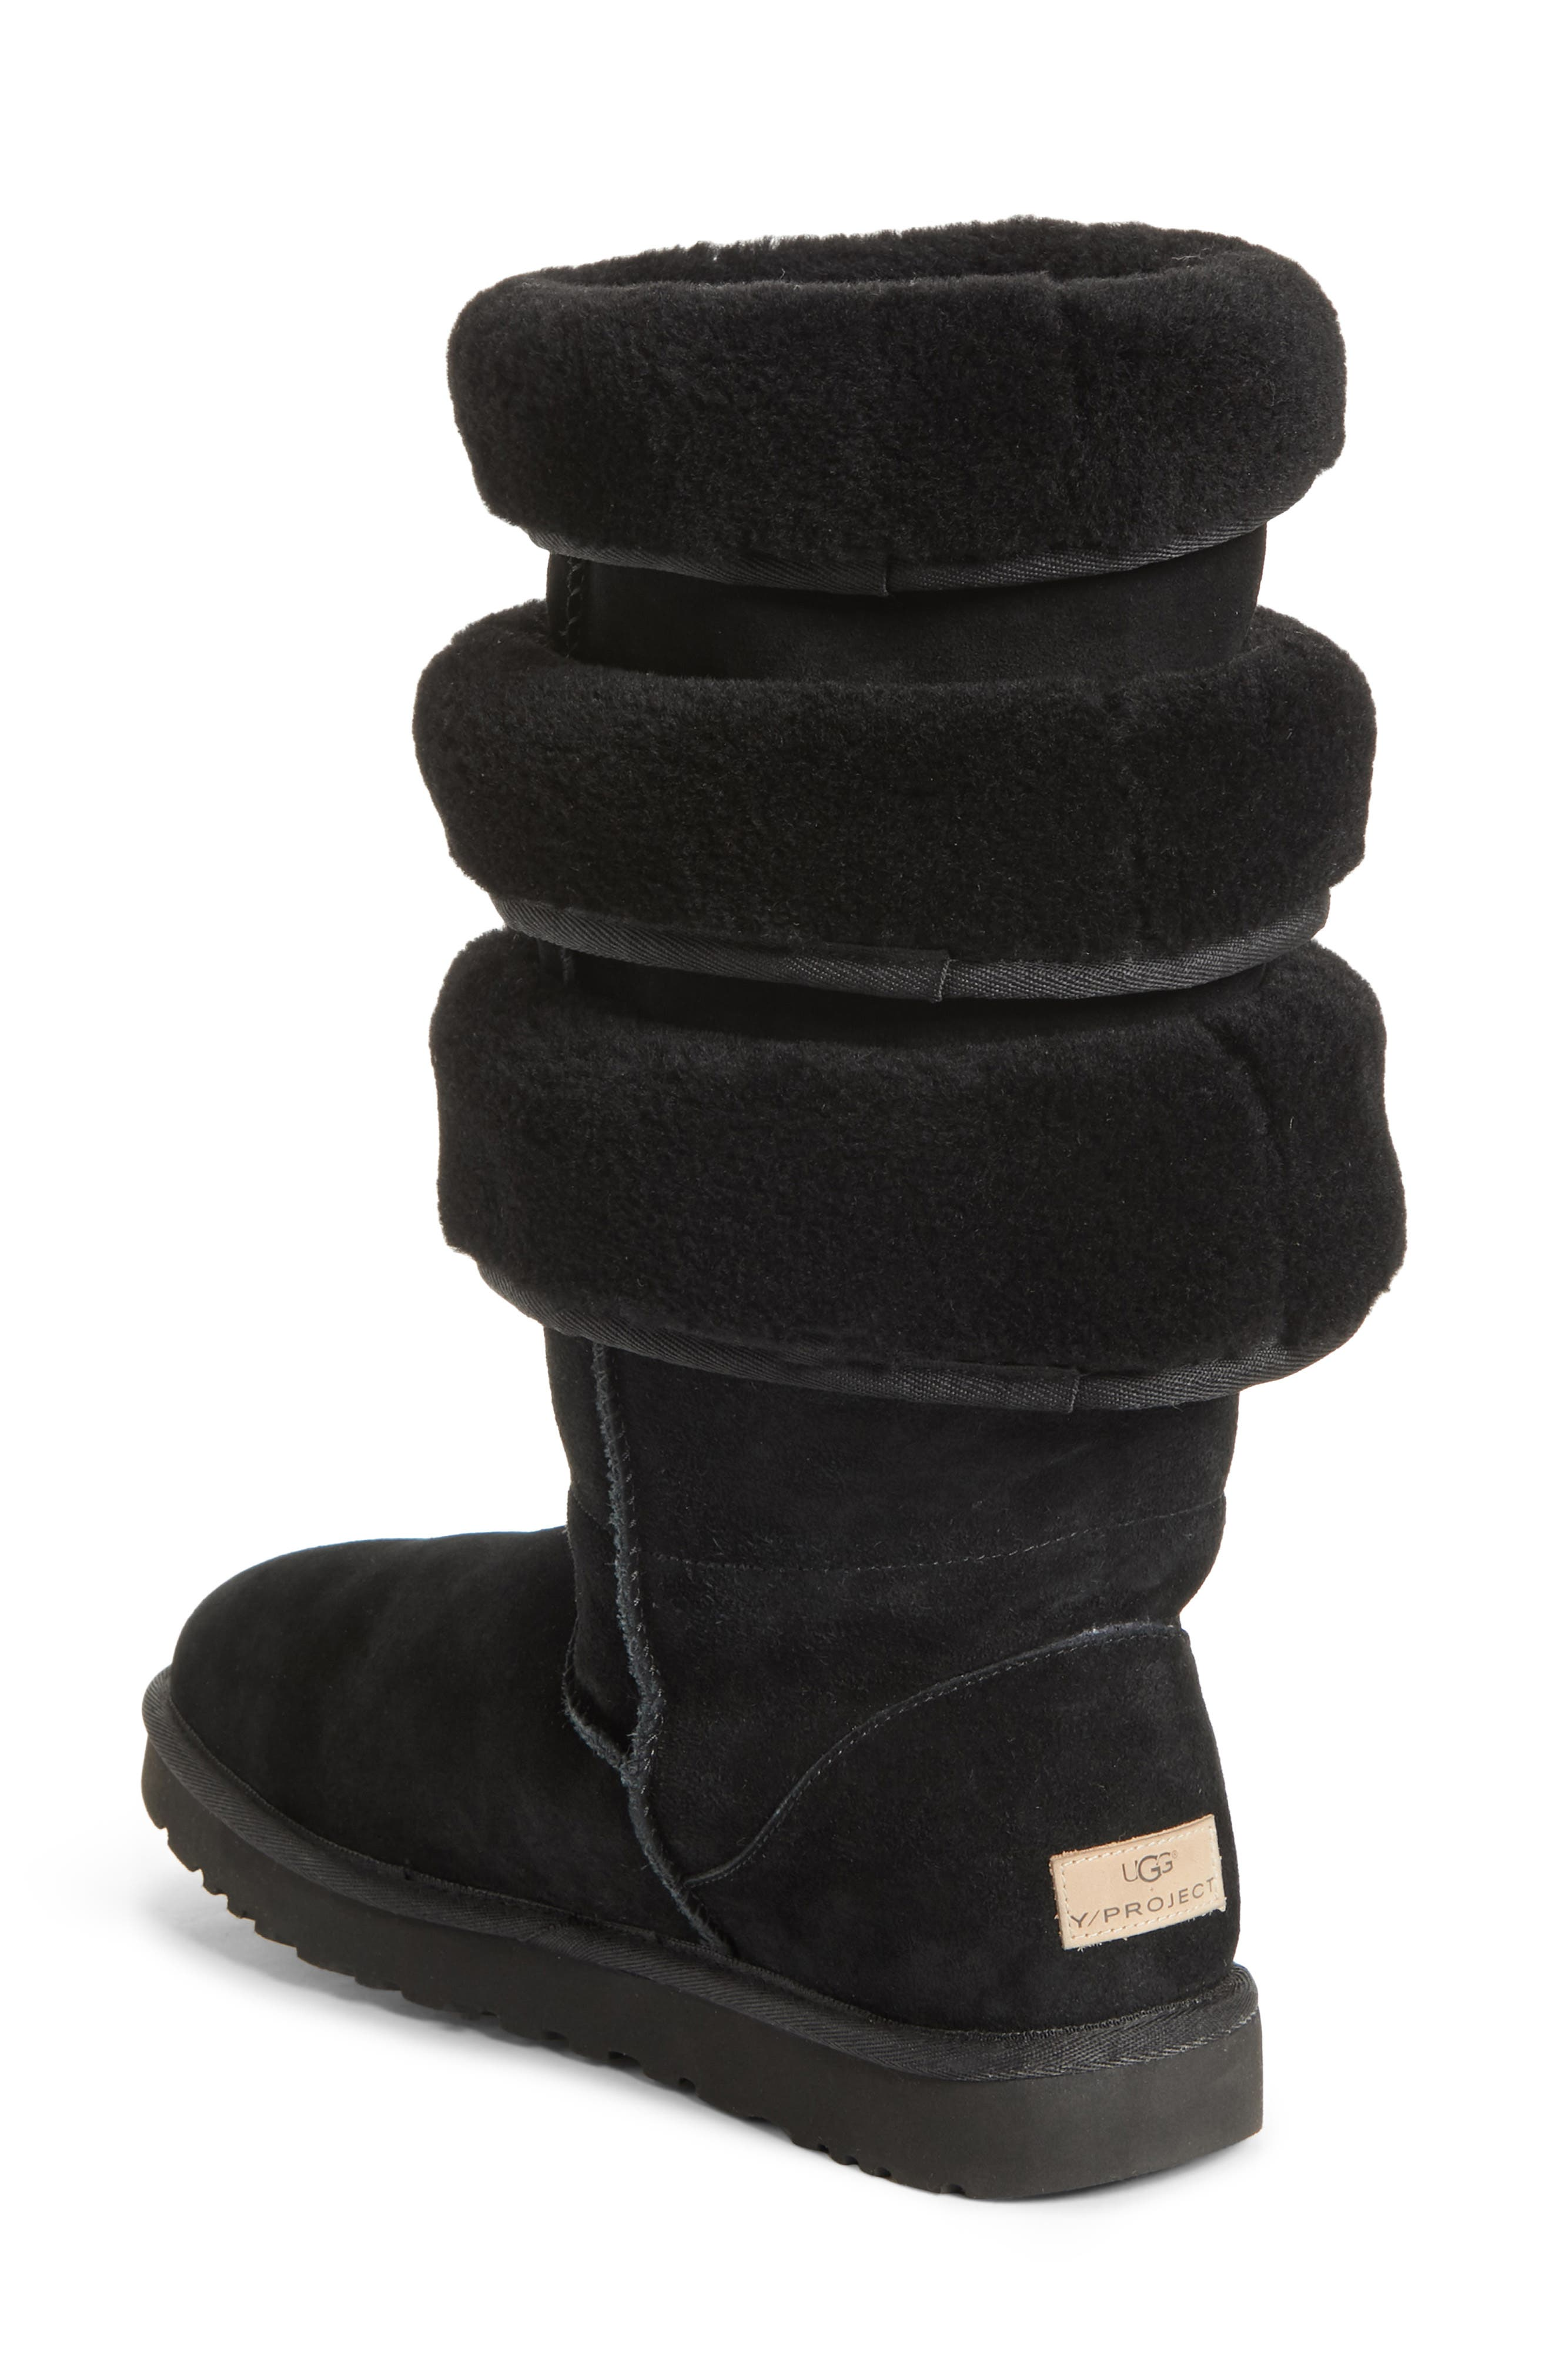 x UGG<sup>®</sup> Layered Boot,                             Alternate thumbnail 2, color,                             NOIR